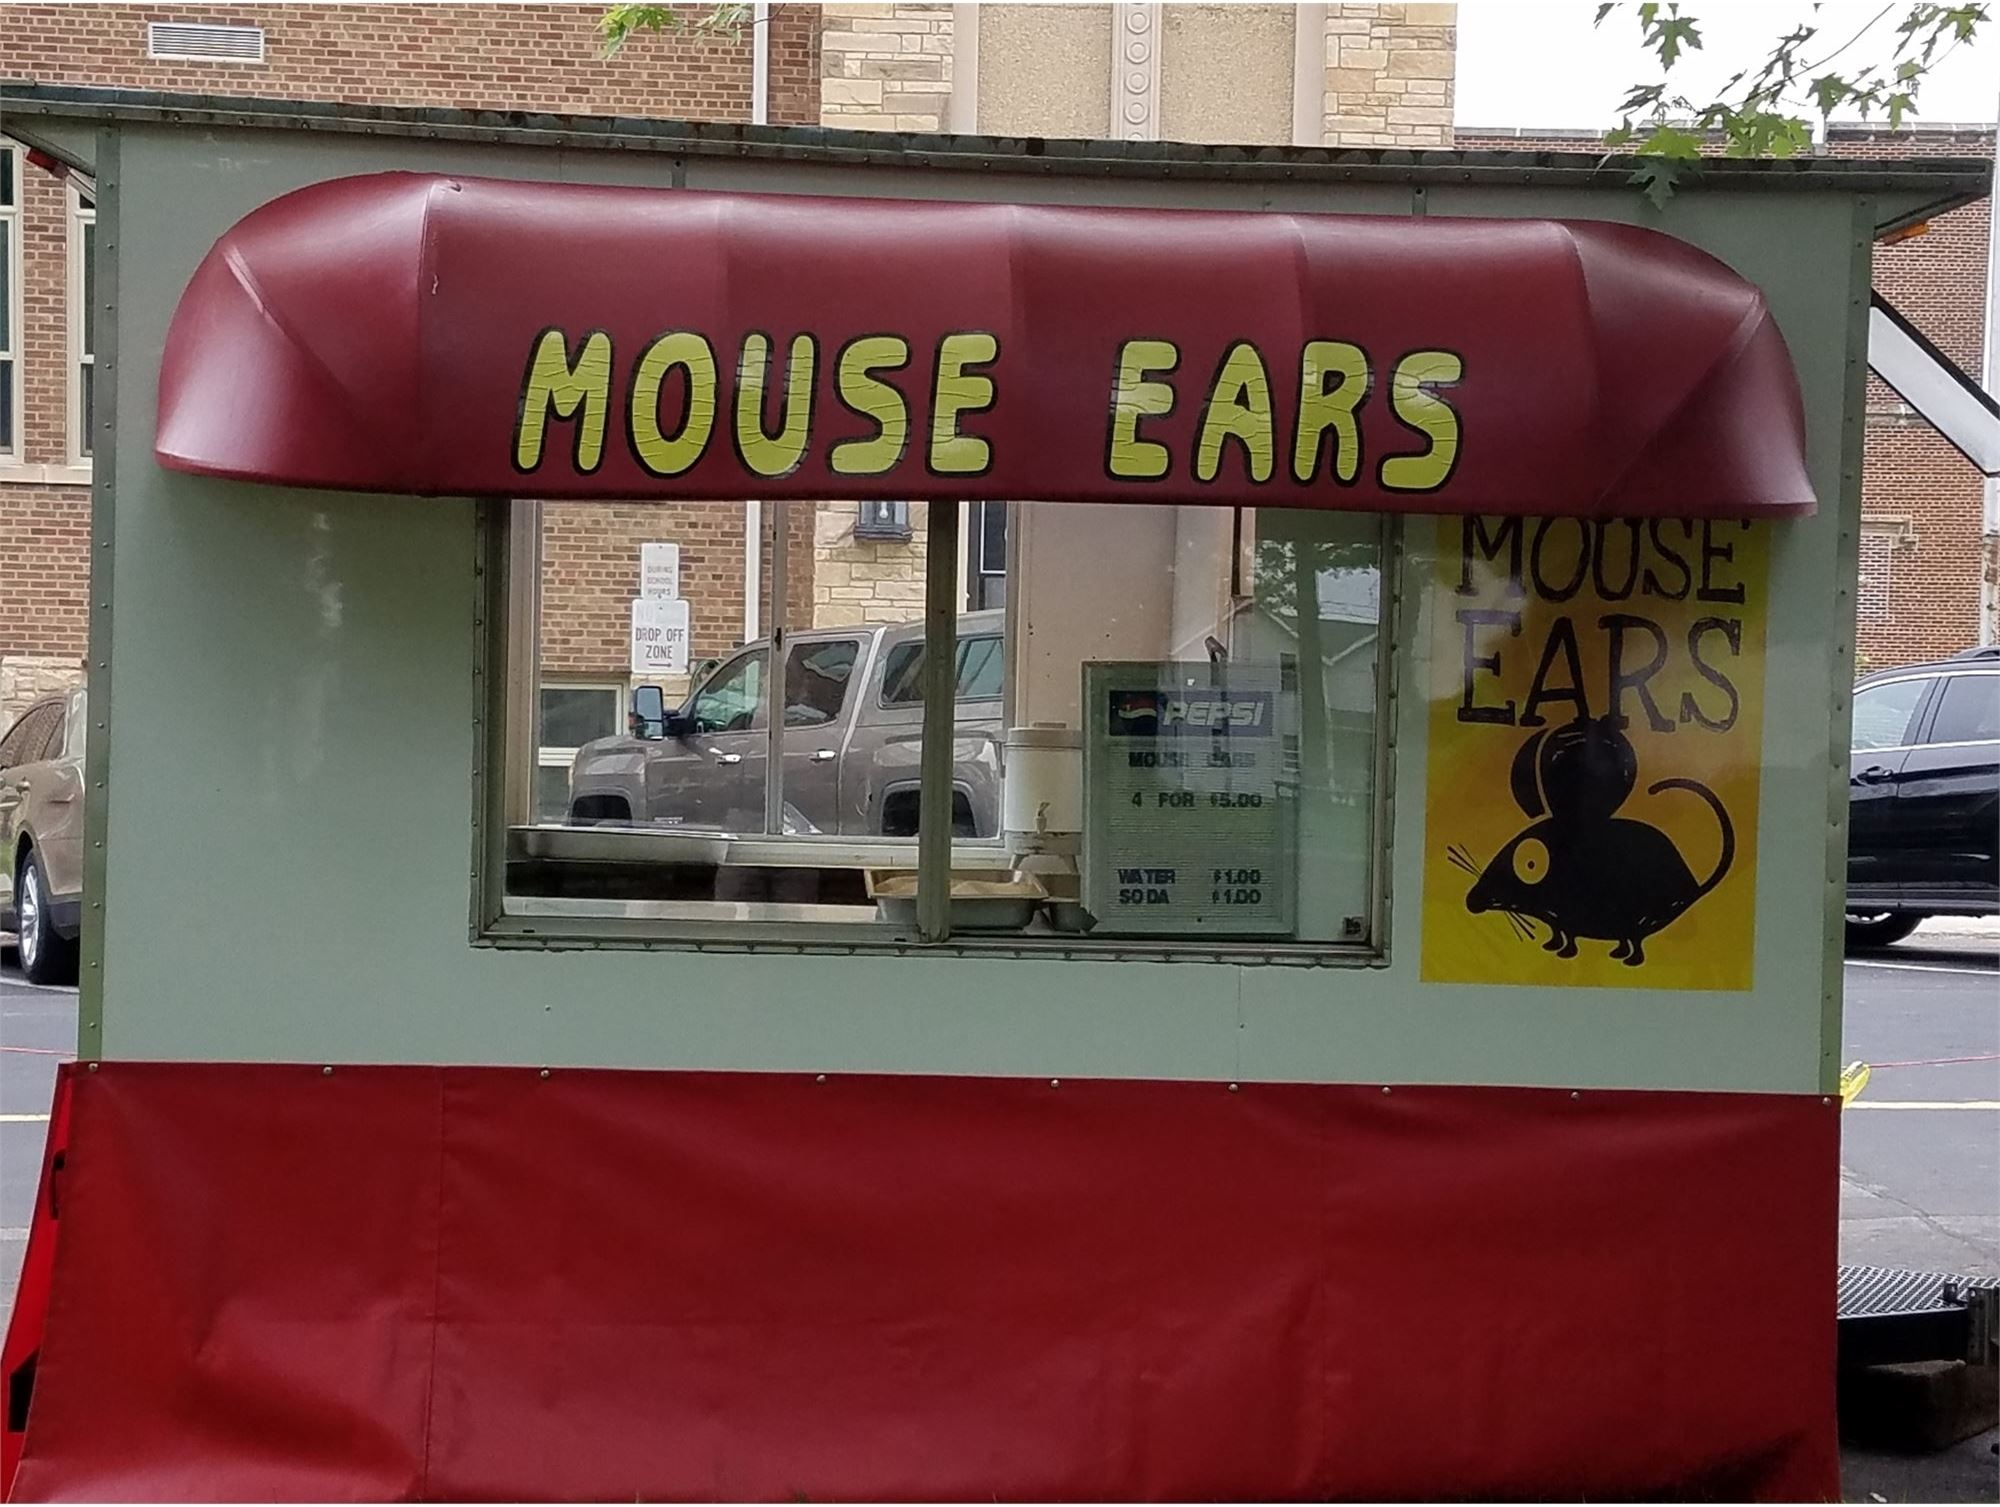 C&C Concessions - Mouse Ears